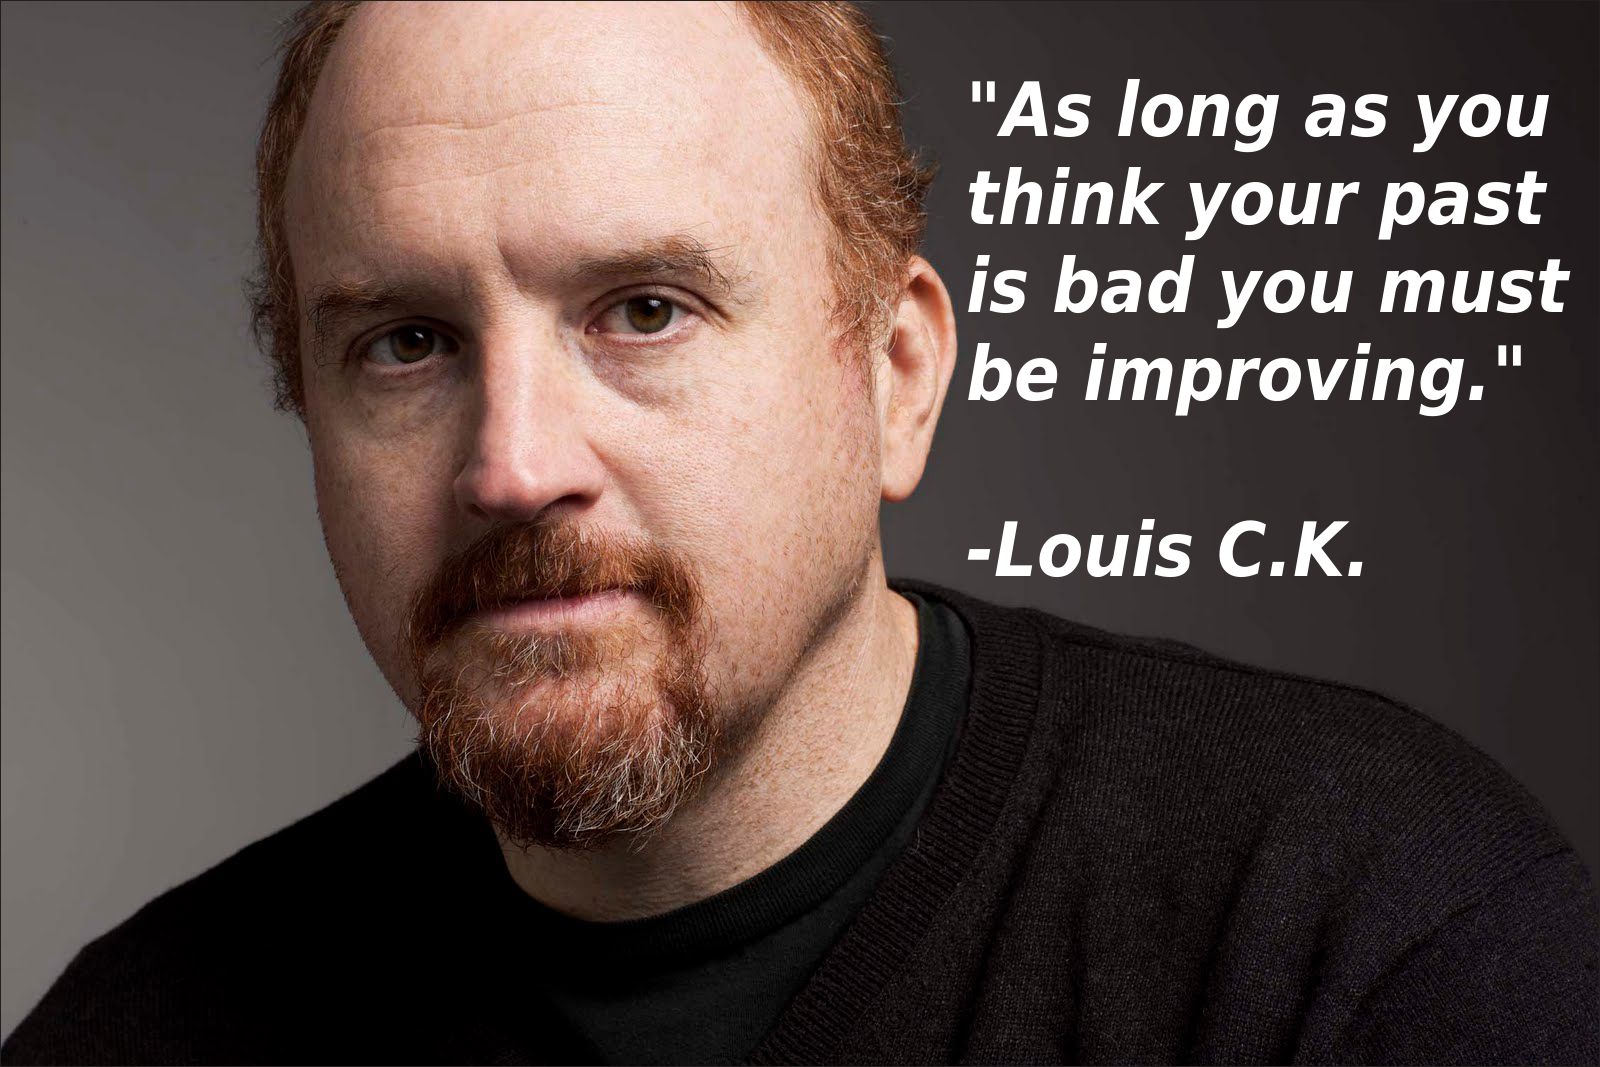 As long as you think your past is bad you must be improving.  – Louis C.K.